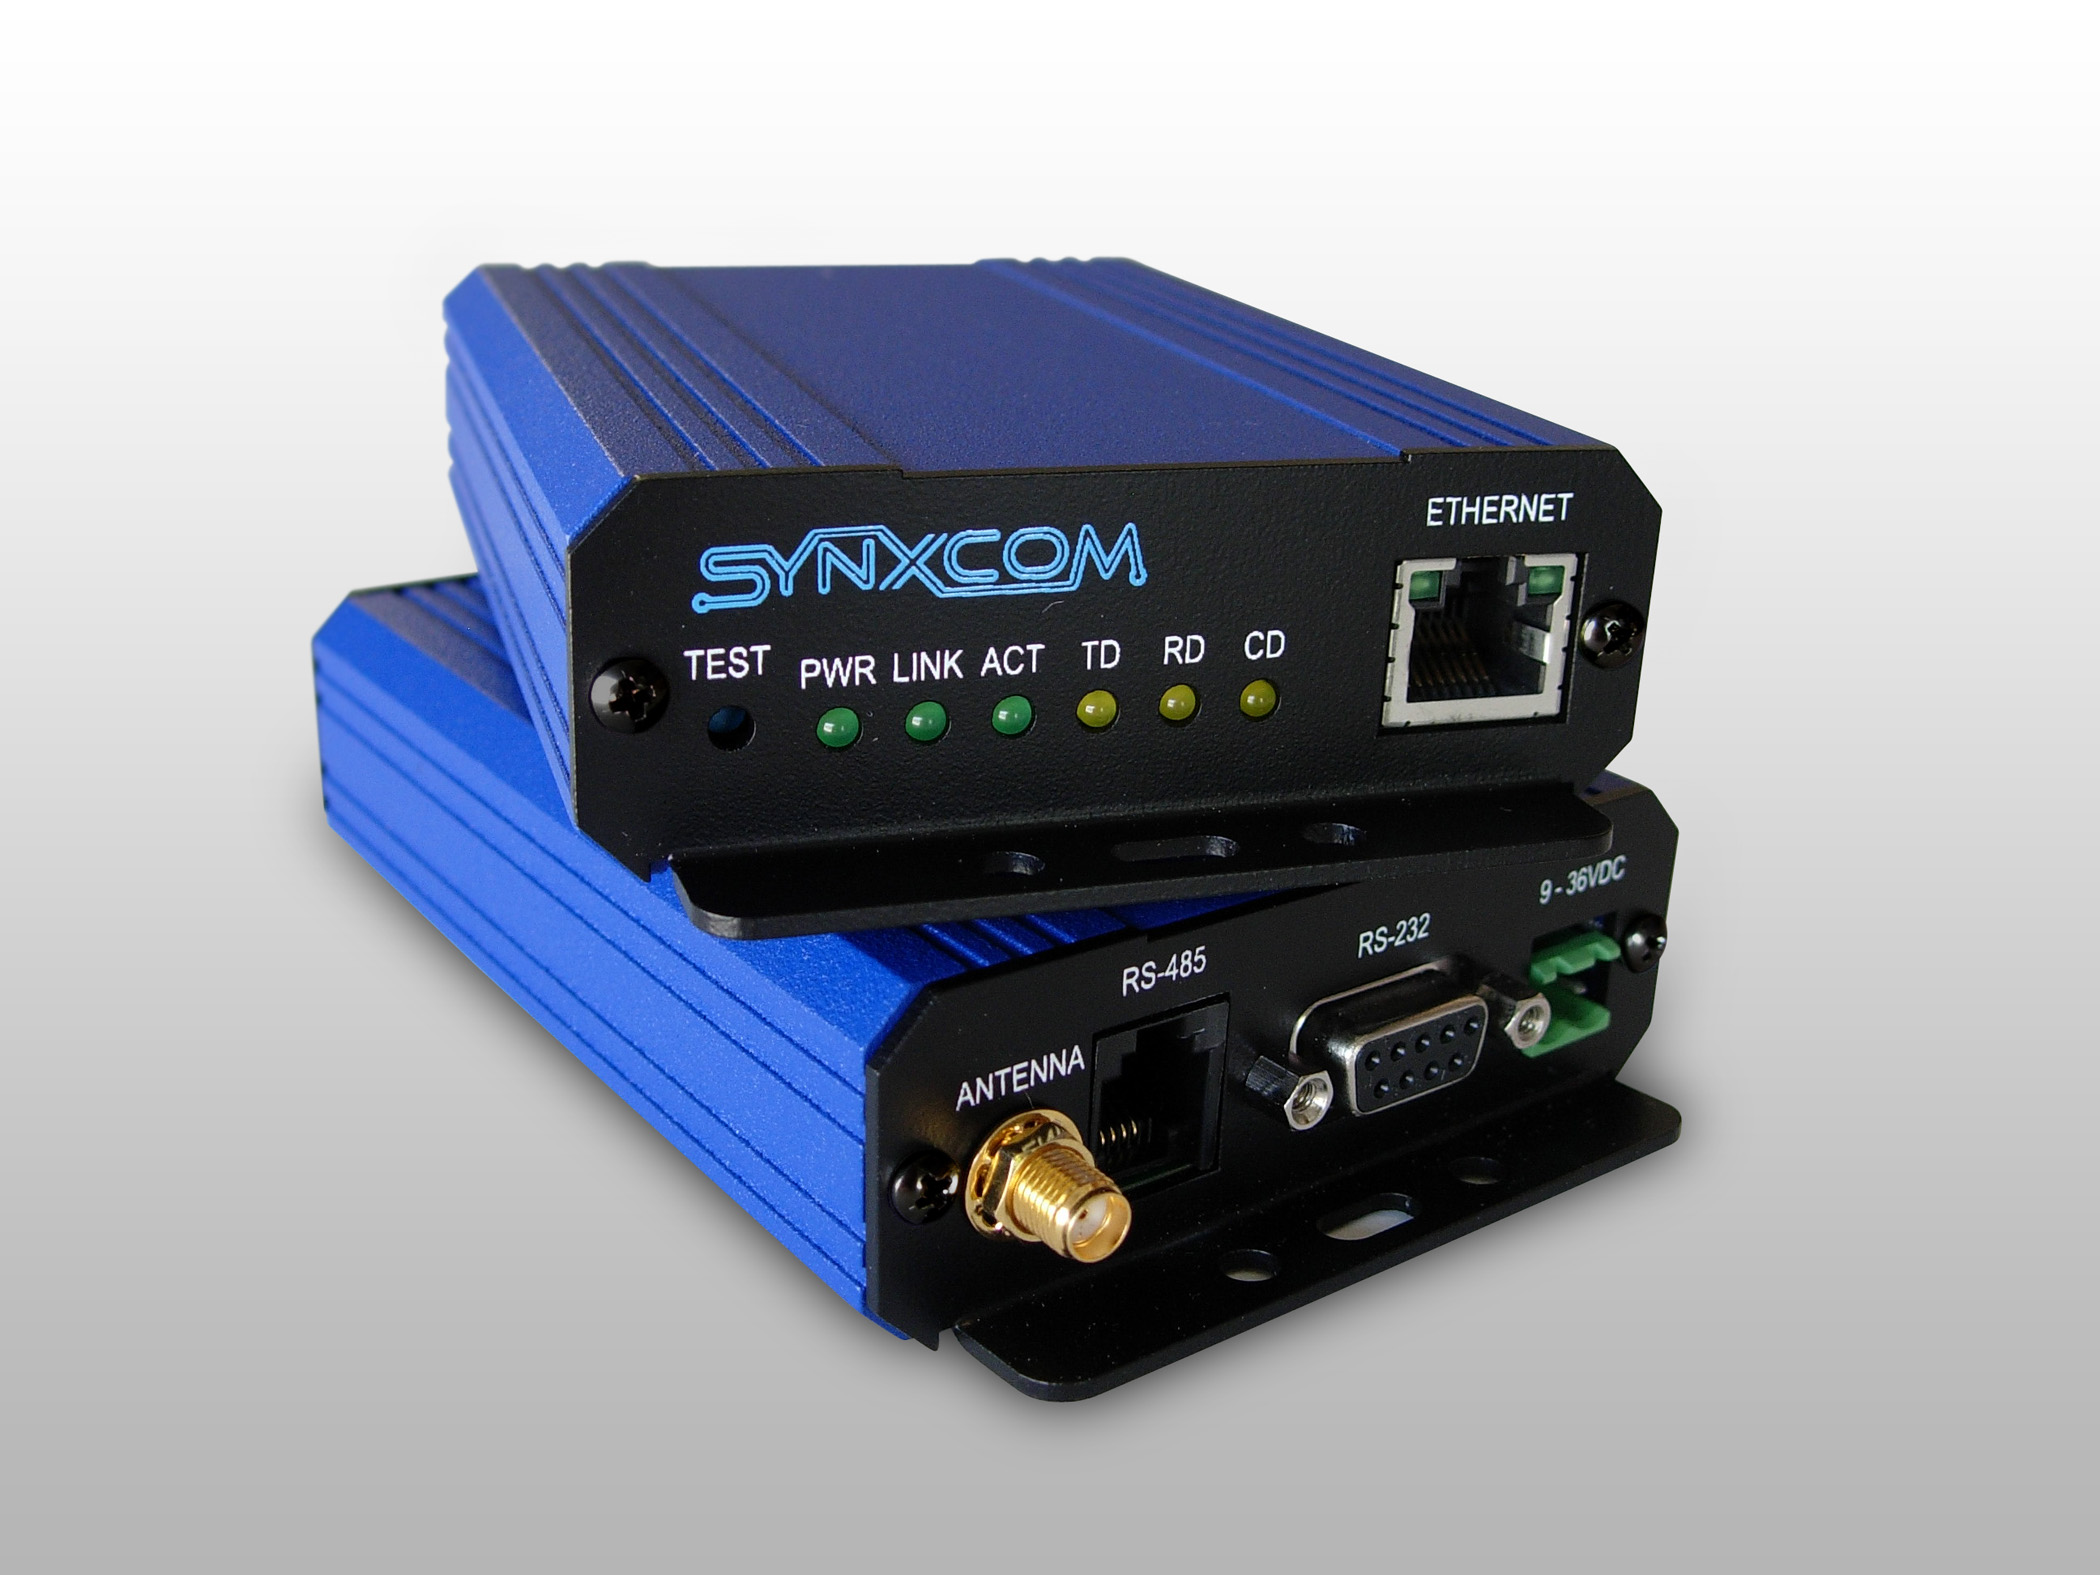 Synxcom SM3090 Wireless Spread Spectrum Modem